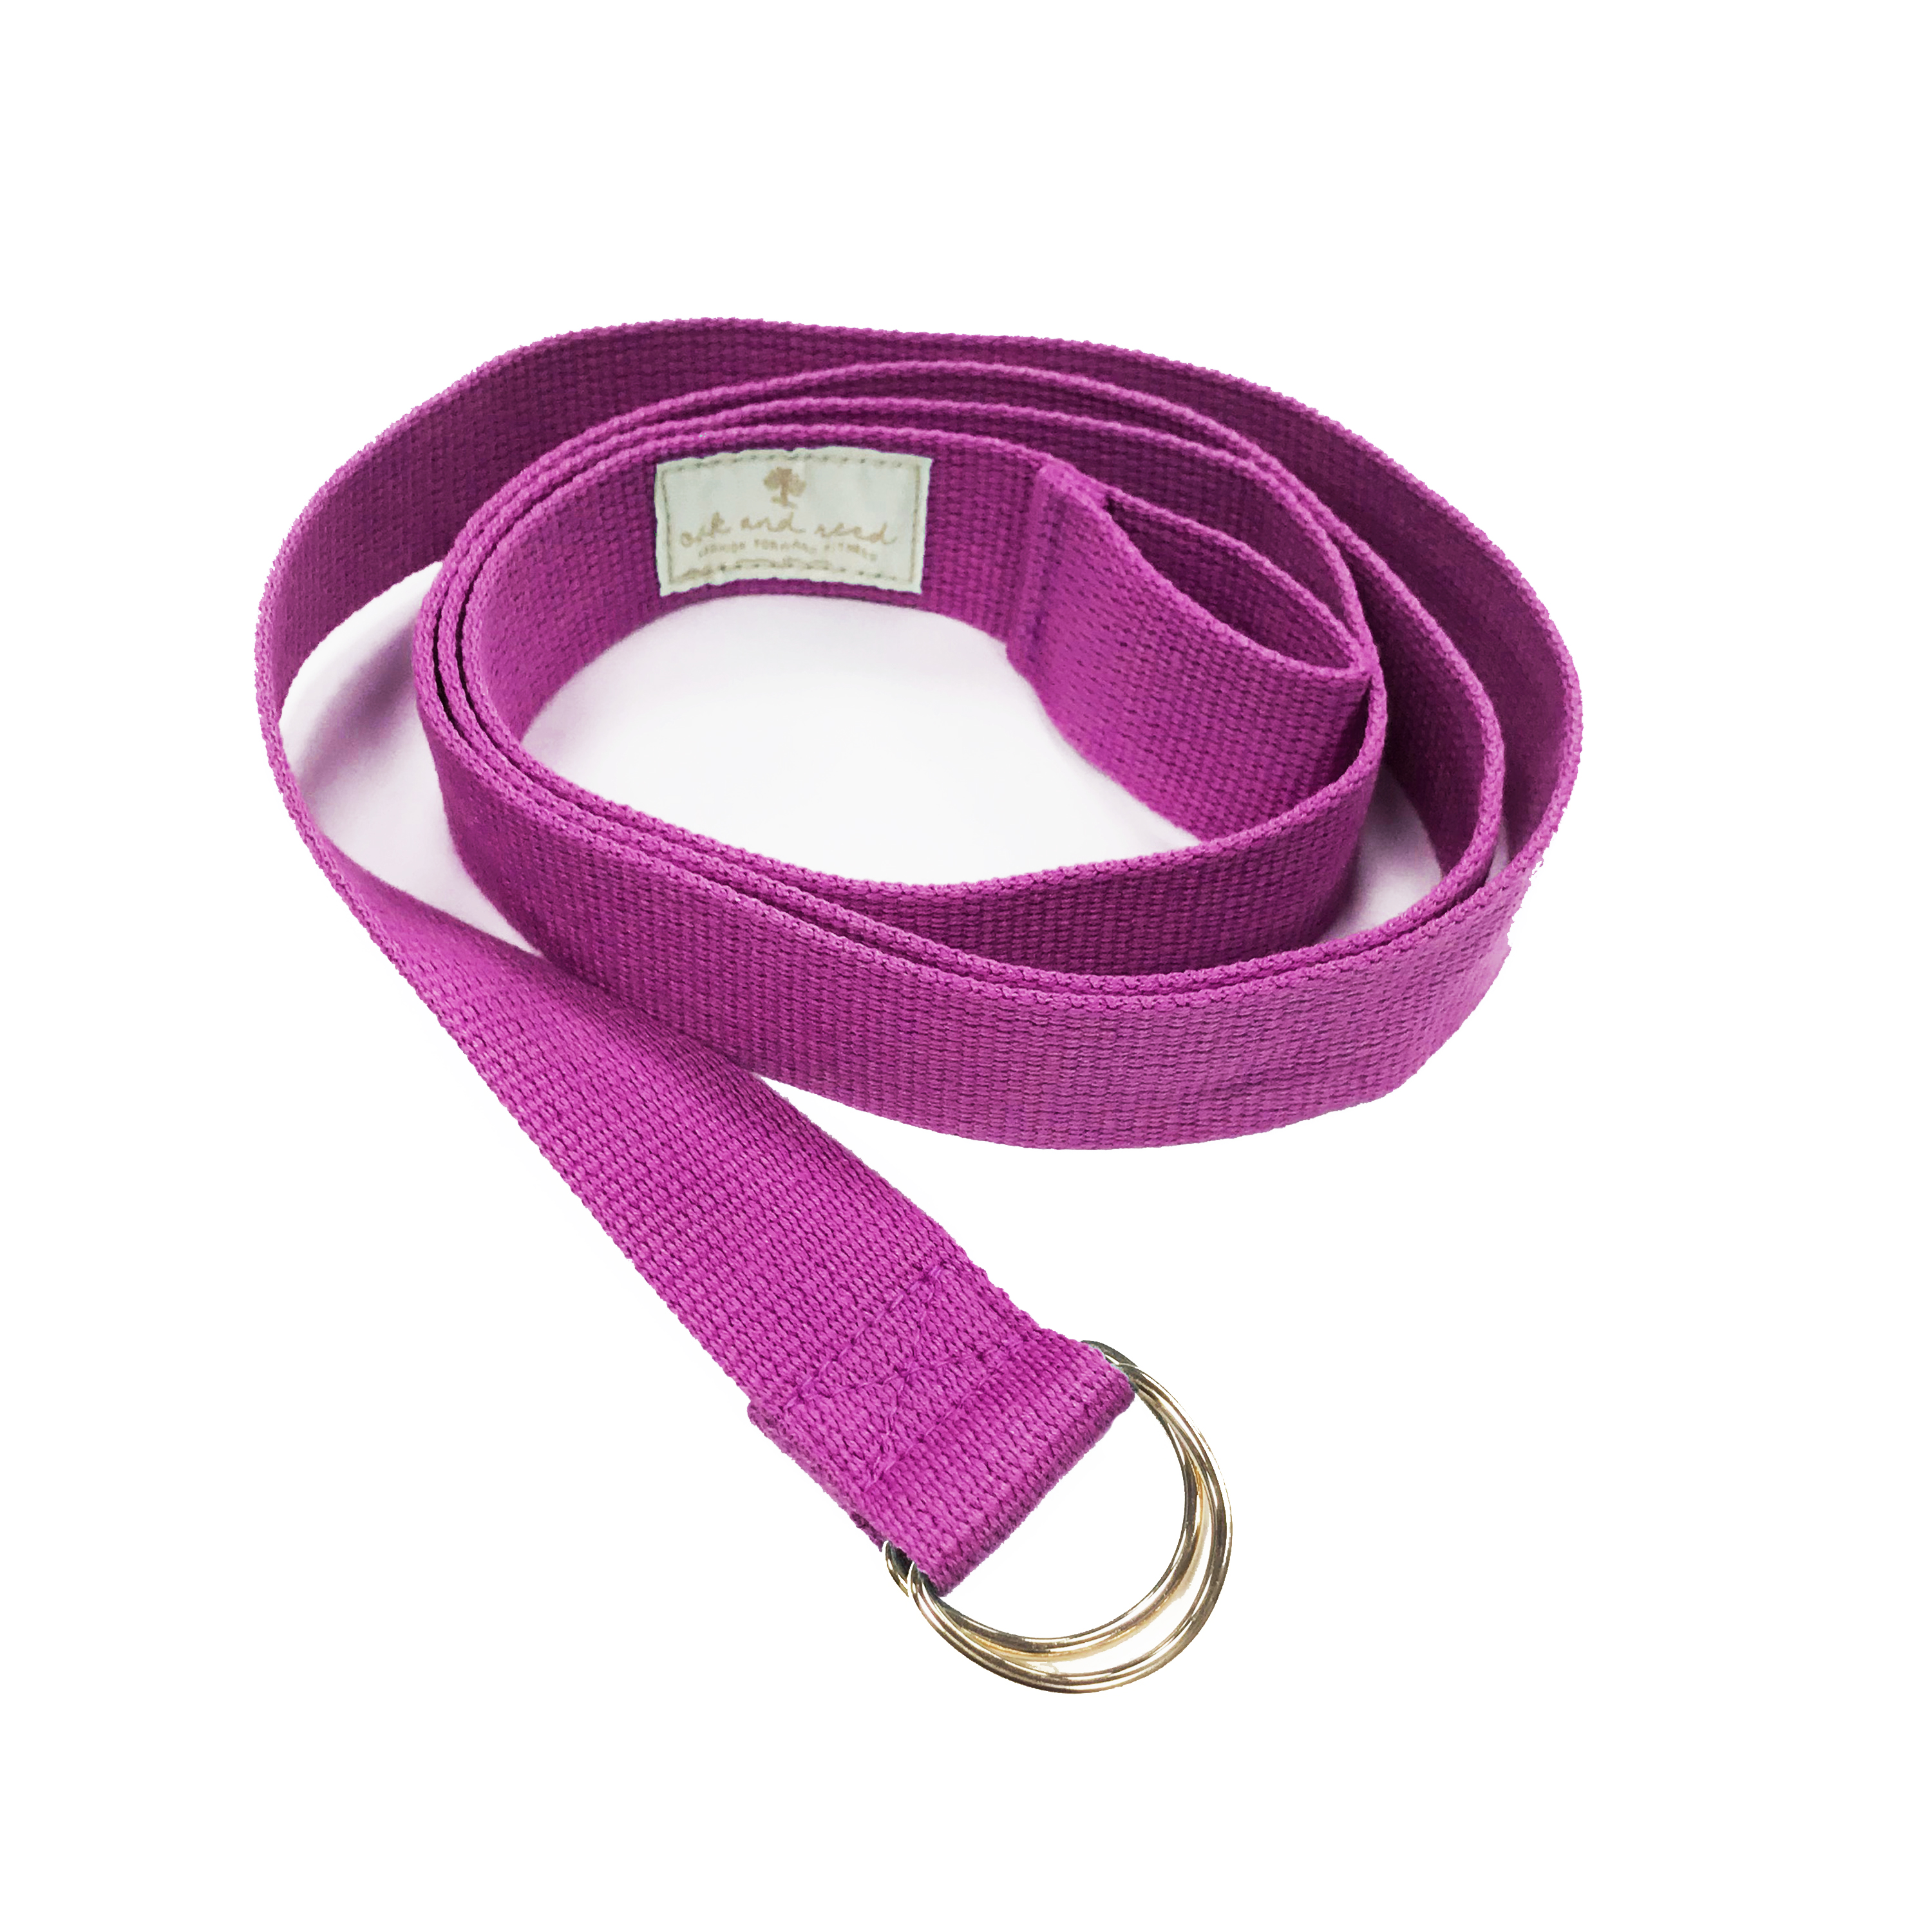 Oak and Reed 2-in-1 Yoga Strap & Mat Sling, Violet/Gold, 100% Cotton